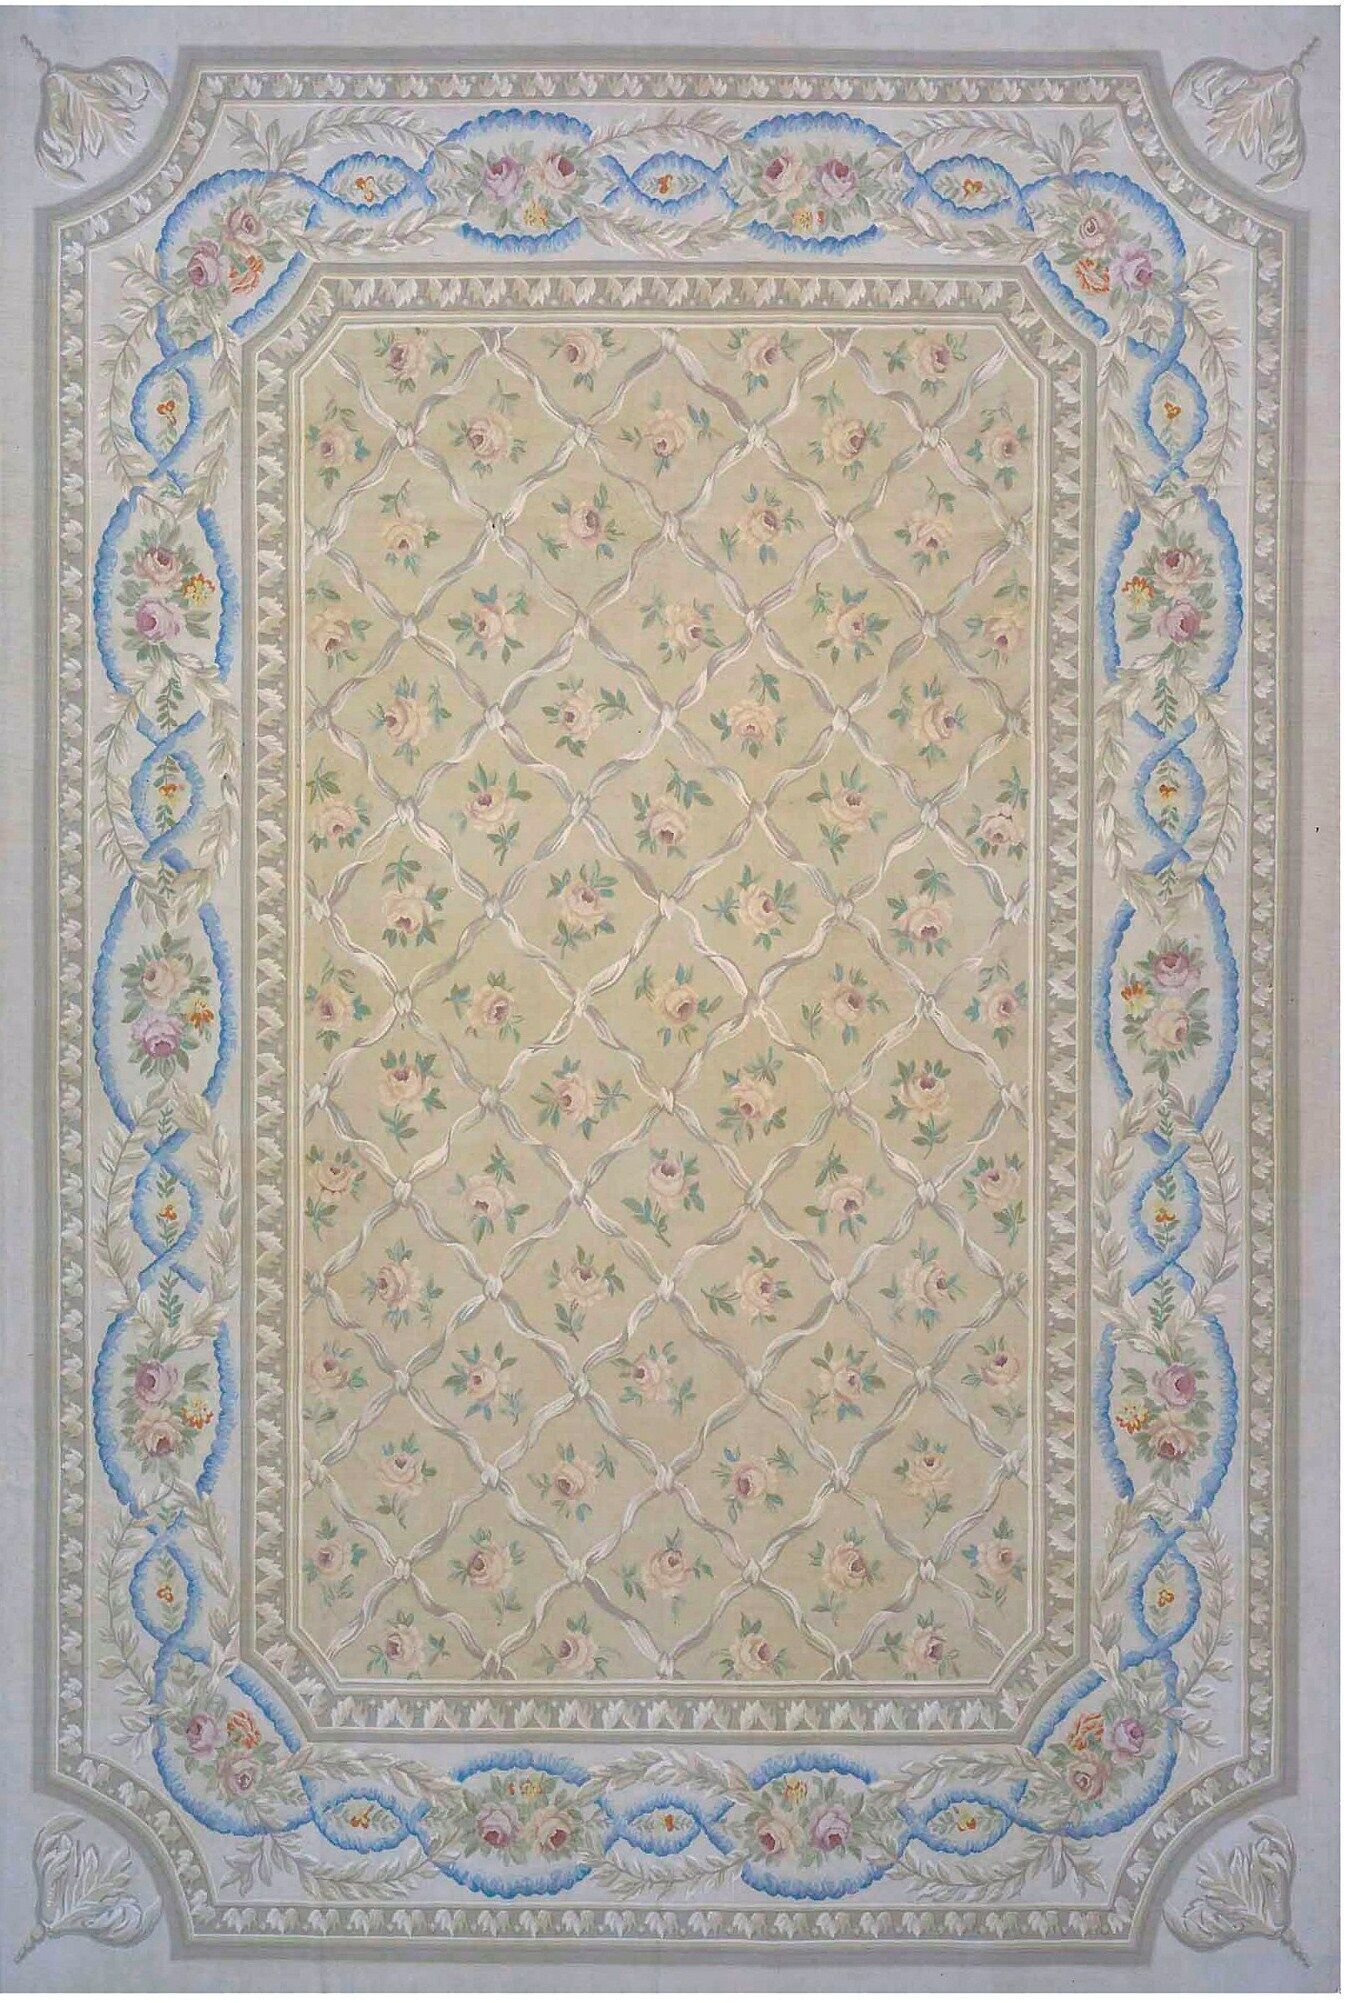 Aubusson Hand-Woven Wool Beige/Brown/Blue Area Rug Rug Size: Rectangle 7'9